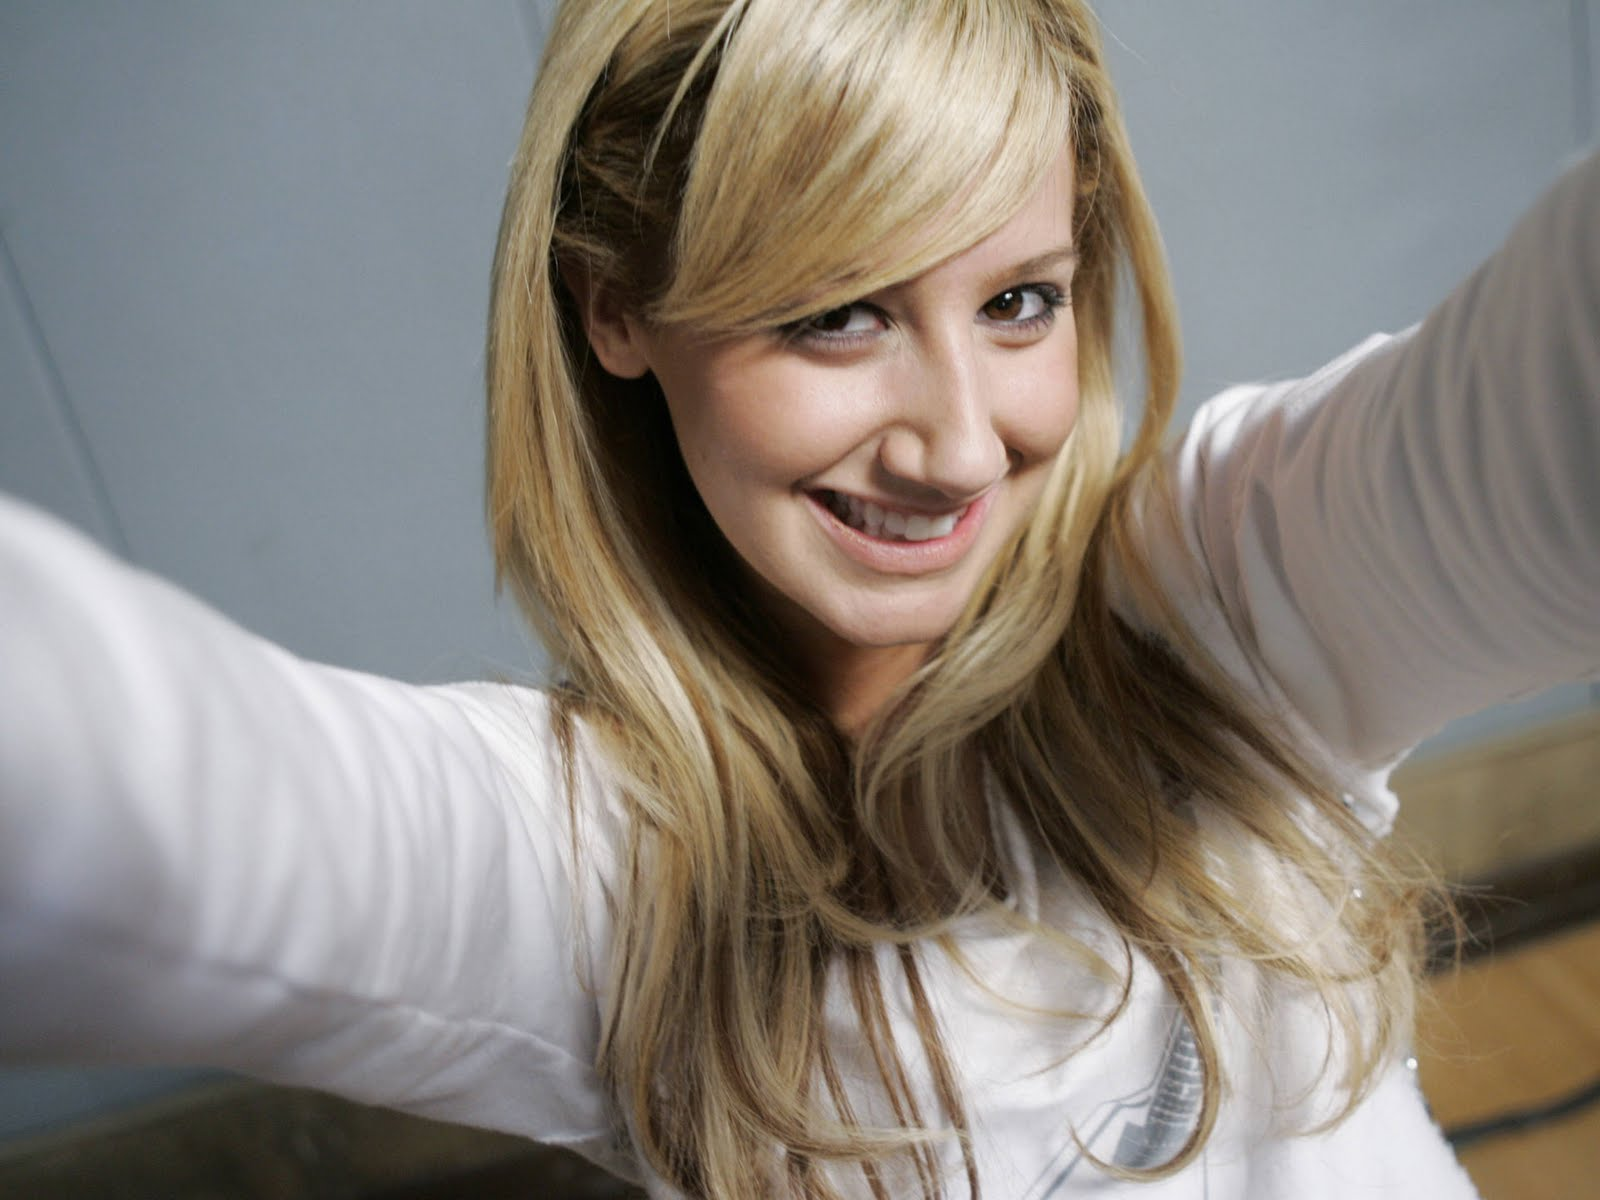 Opinion Ashley tisdale hot speaking